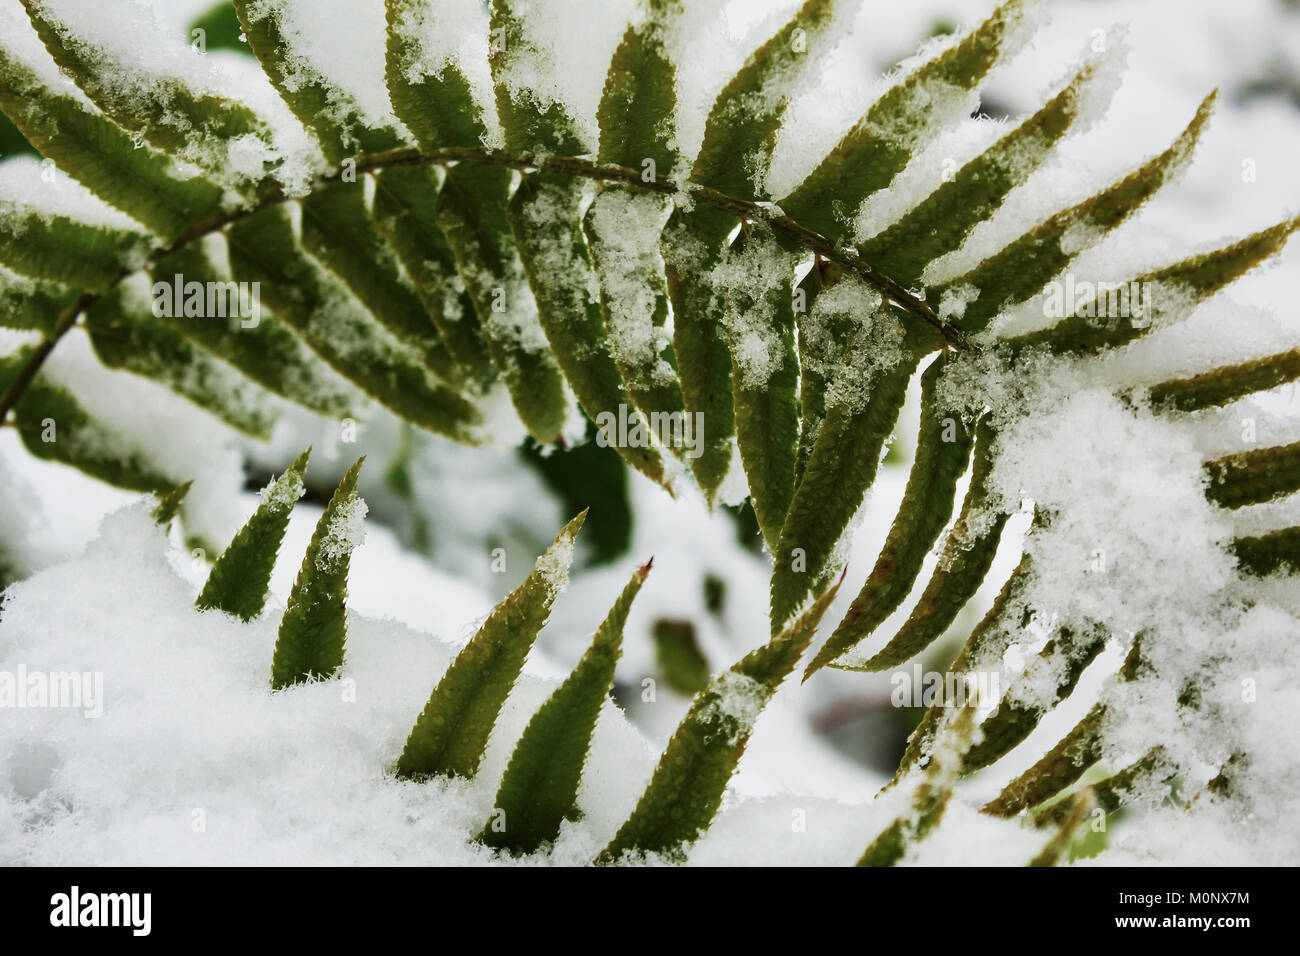 Green Ferns Covered In Snow Stock Photo